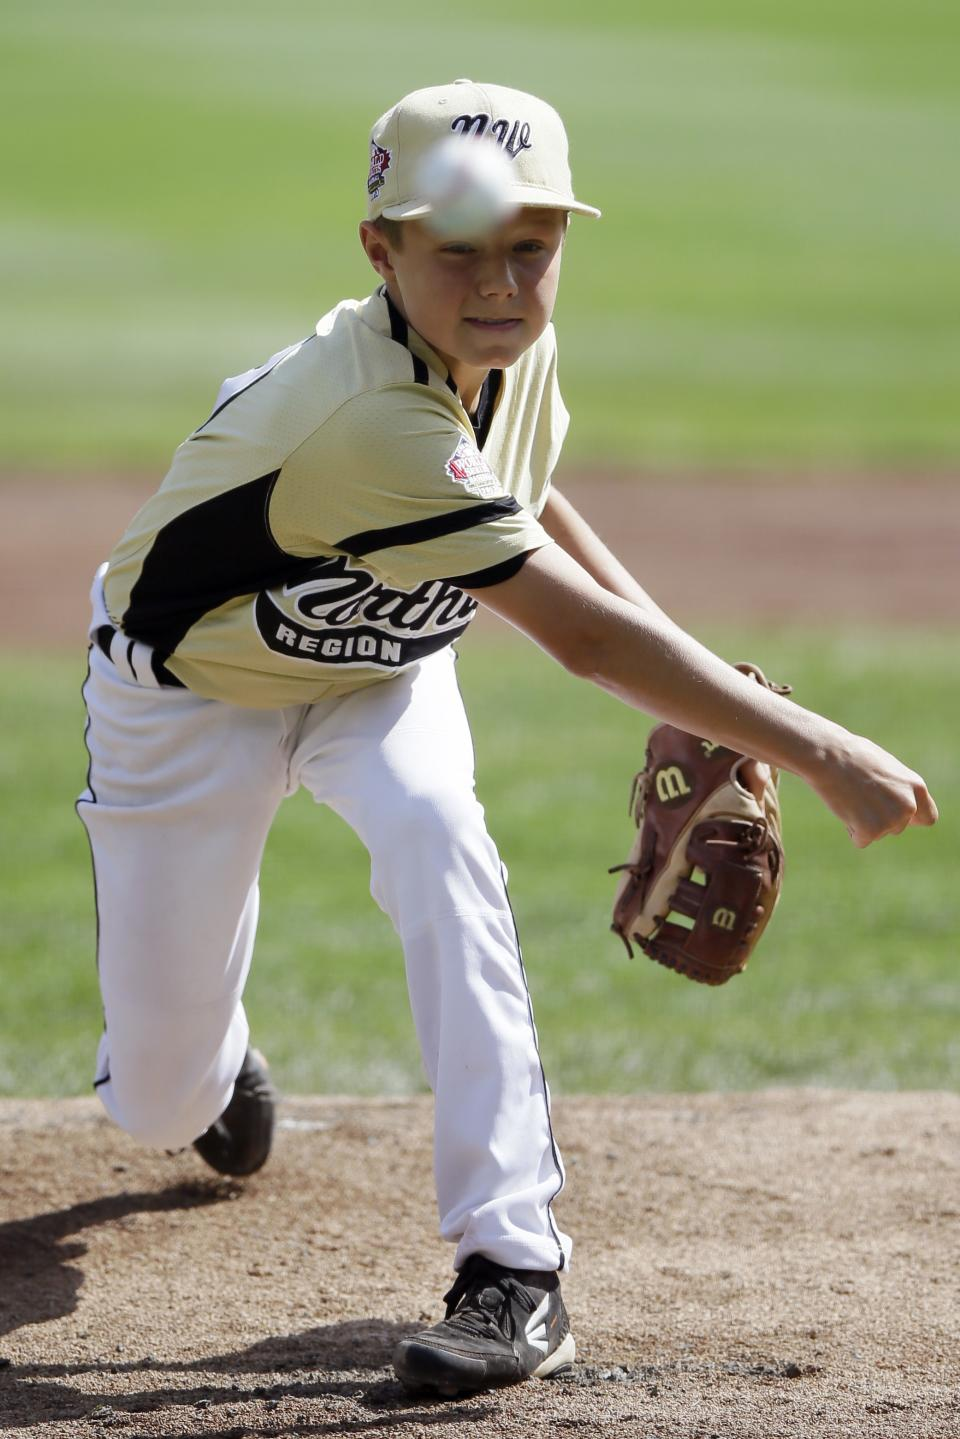 Sammamish, Wash.'s Dalton Chandler pitches during the first inning of an elimination baseball game against Westport, Conn. at the Little League World Series tournament, Friday, Aug. 23, 2013, in South Williamsport, Pa. (AP Photo/Matt Slocum)